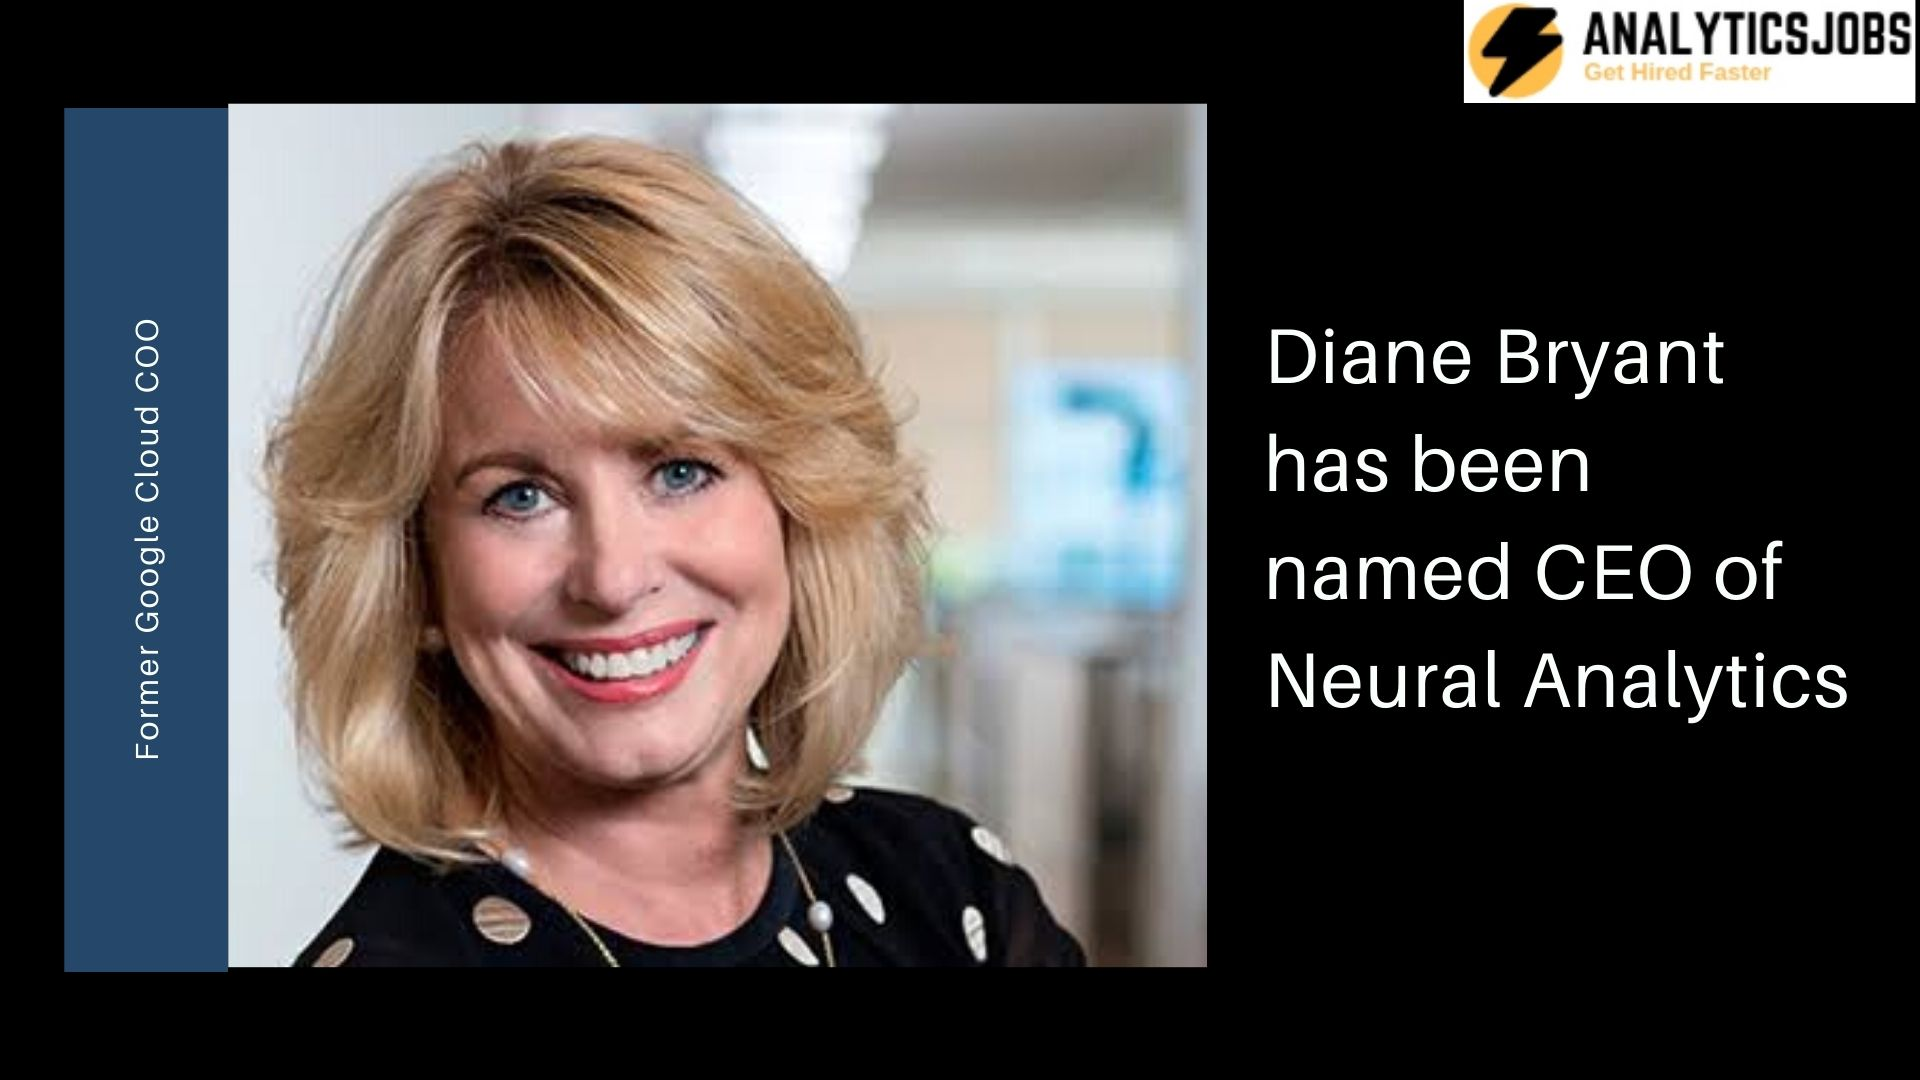 SUPERVISED LEARNING GUIDE FOR COMPLETE BEGINNERS